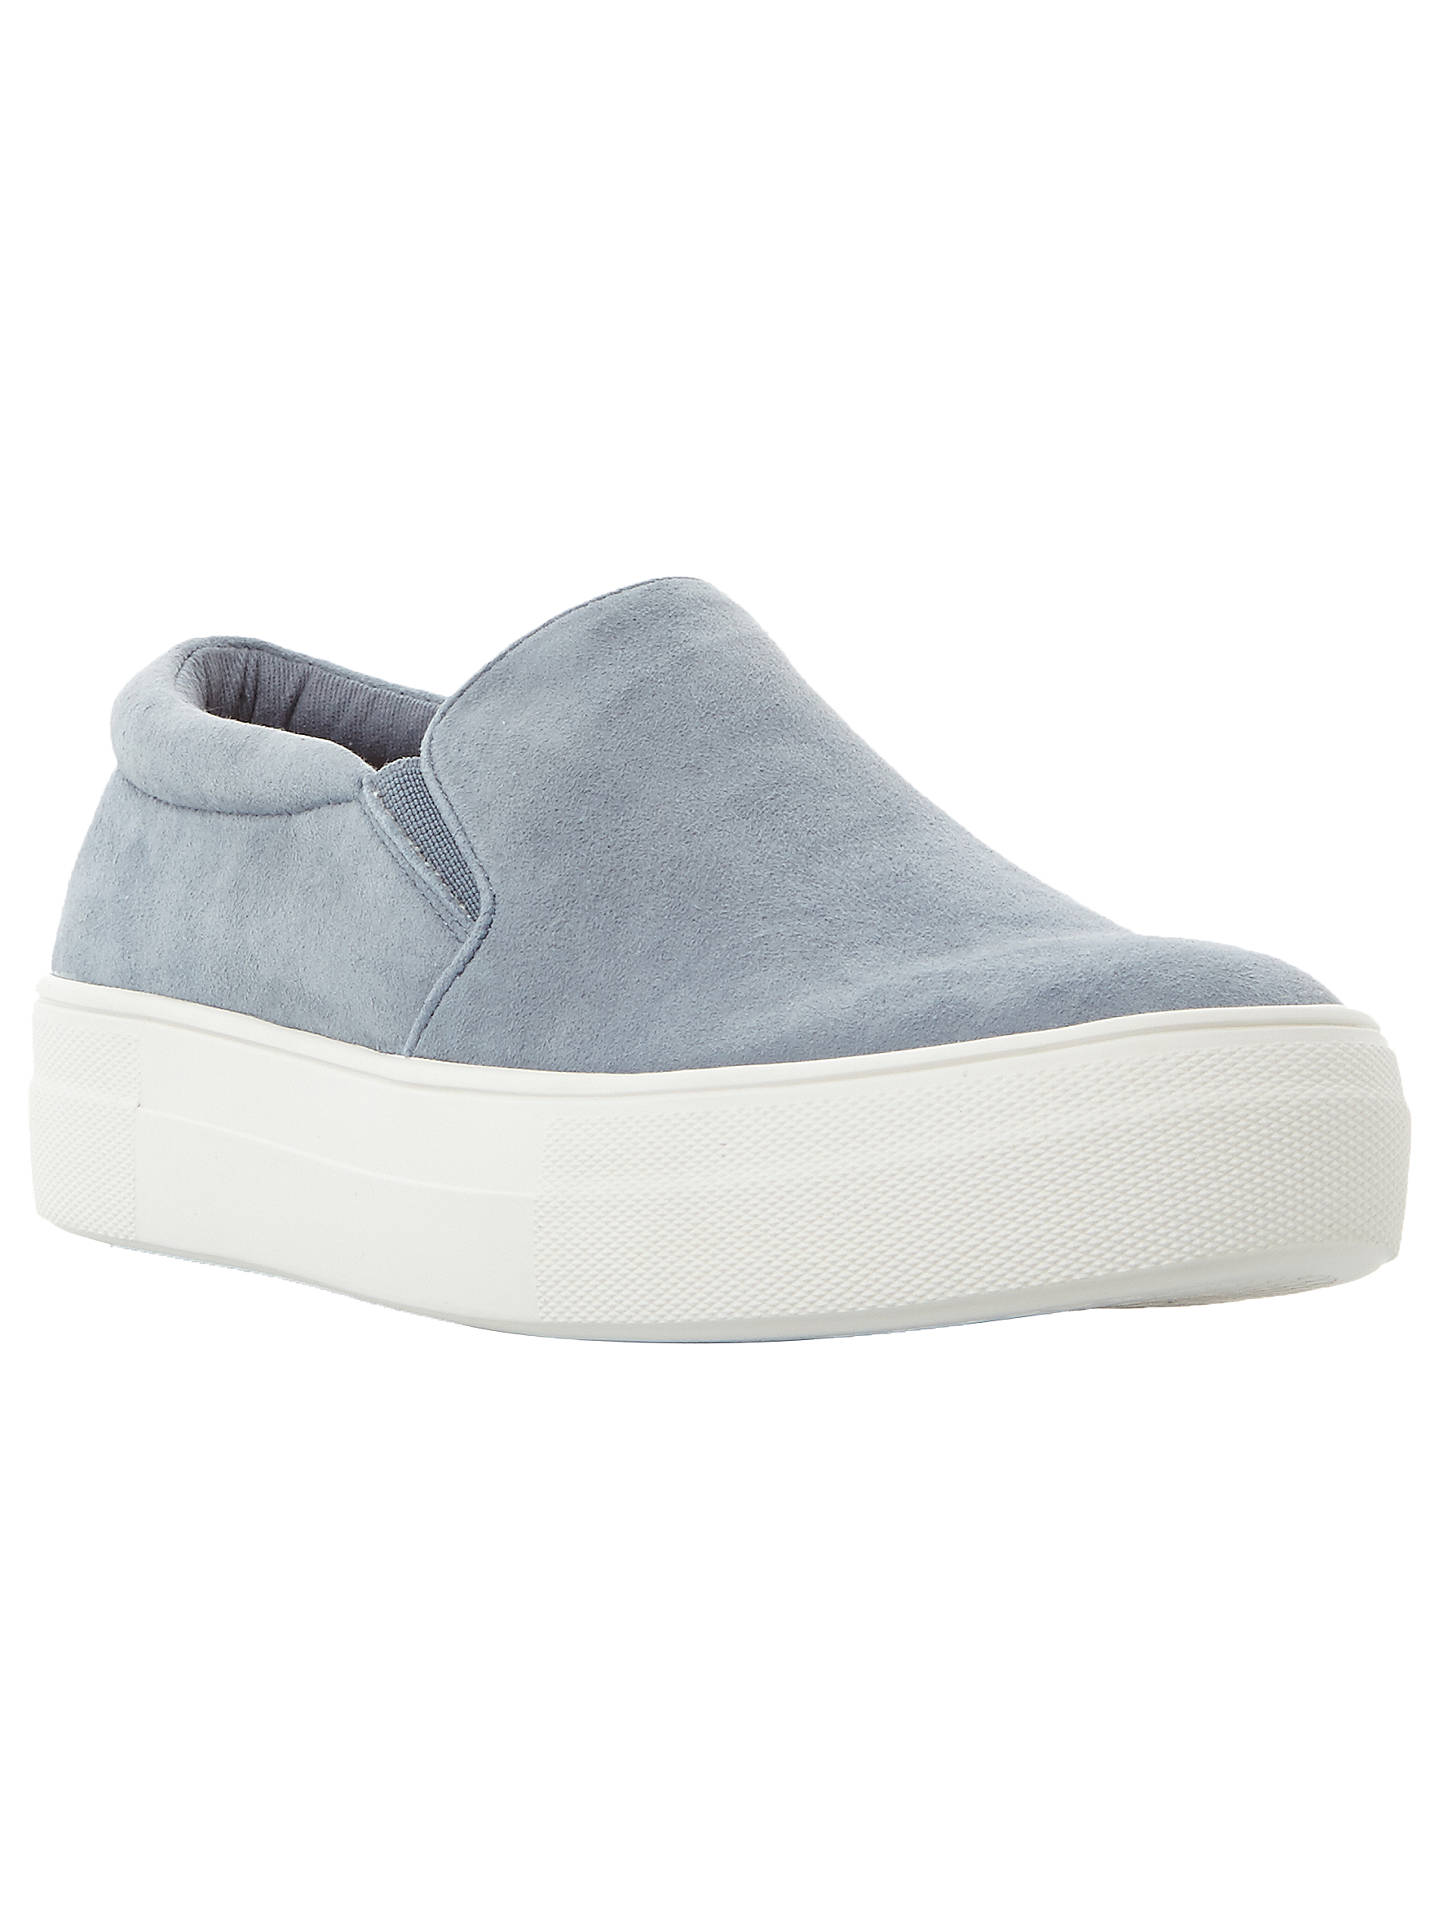 e334dd38c7478 Buy Steve Madden Gills Suede Flatform Slip On Trainers, Blue, 6 Online at  johnlewis ...